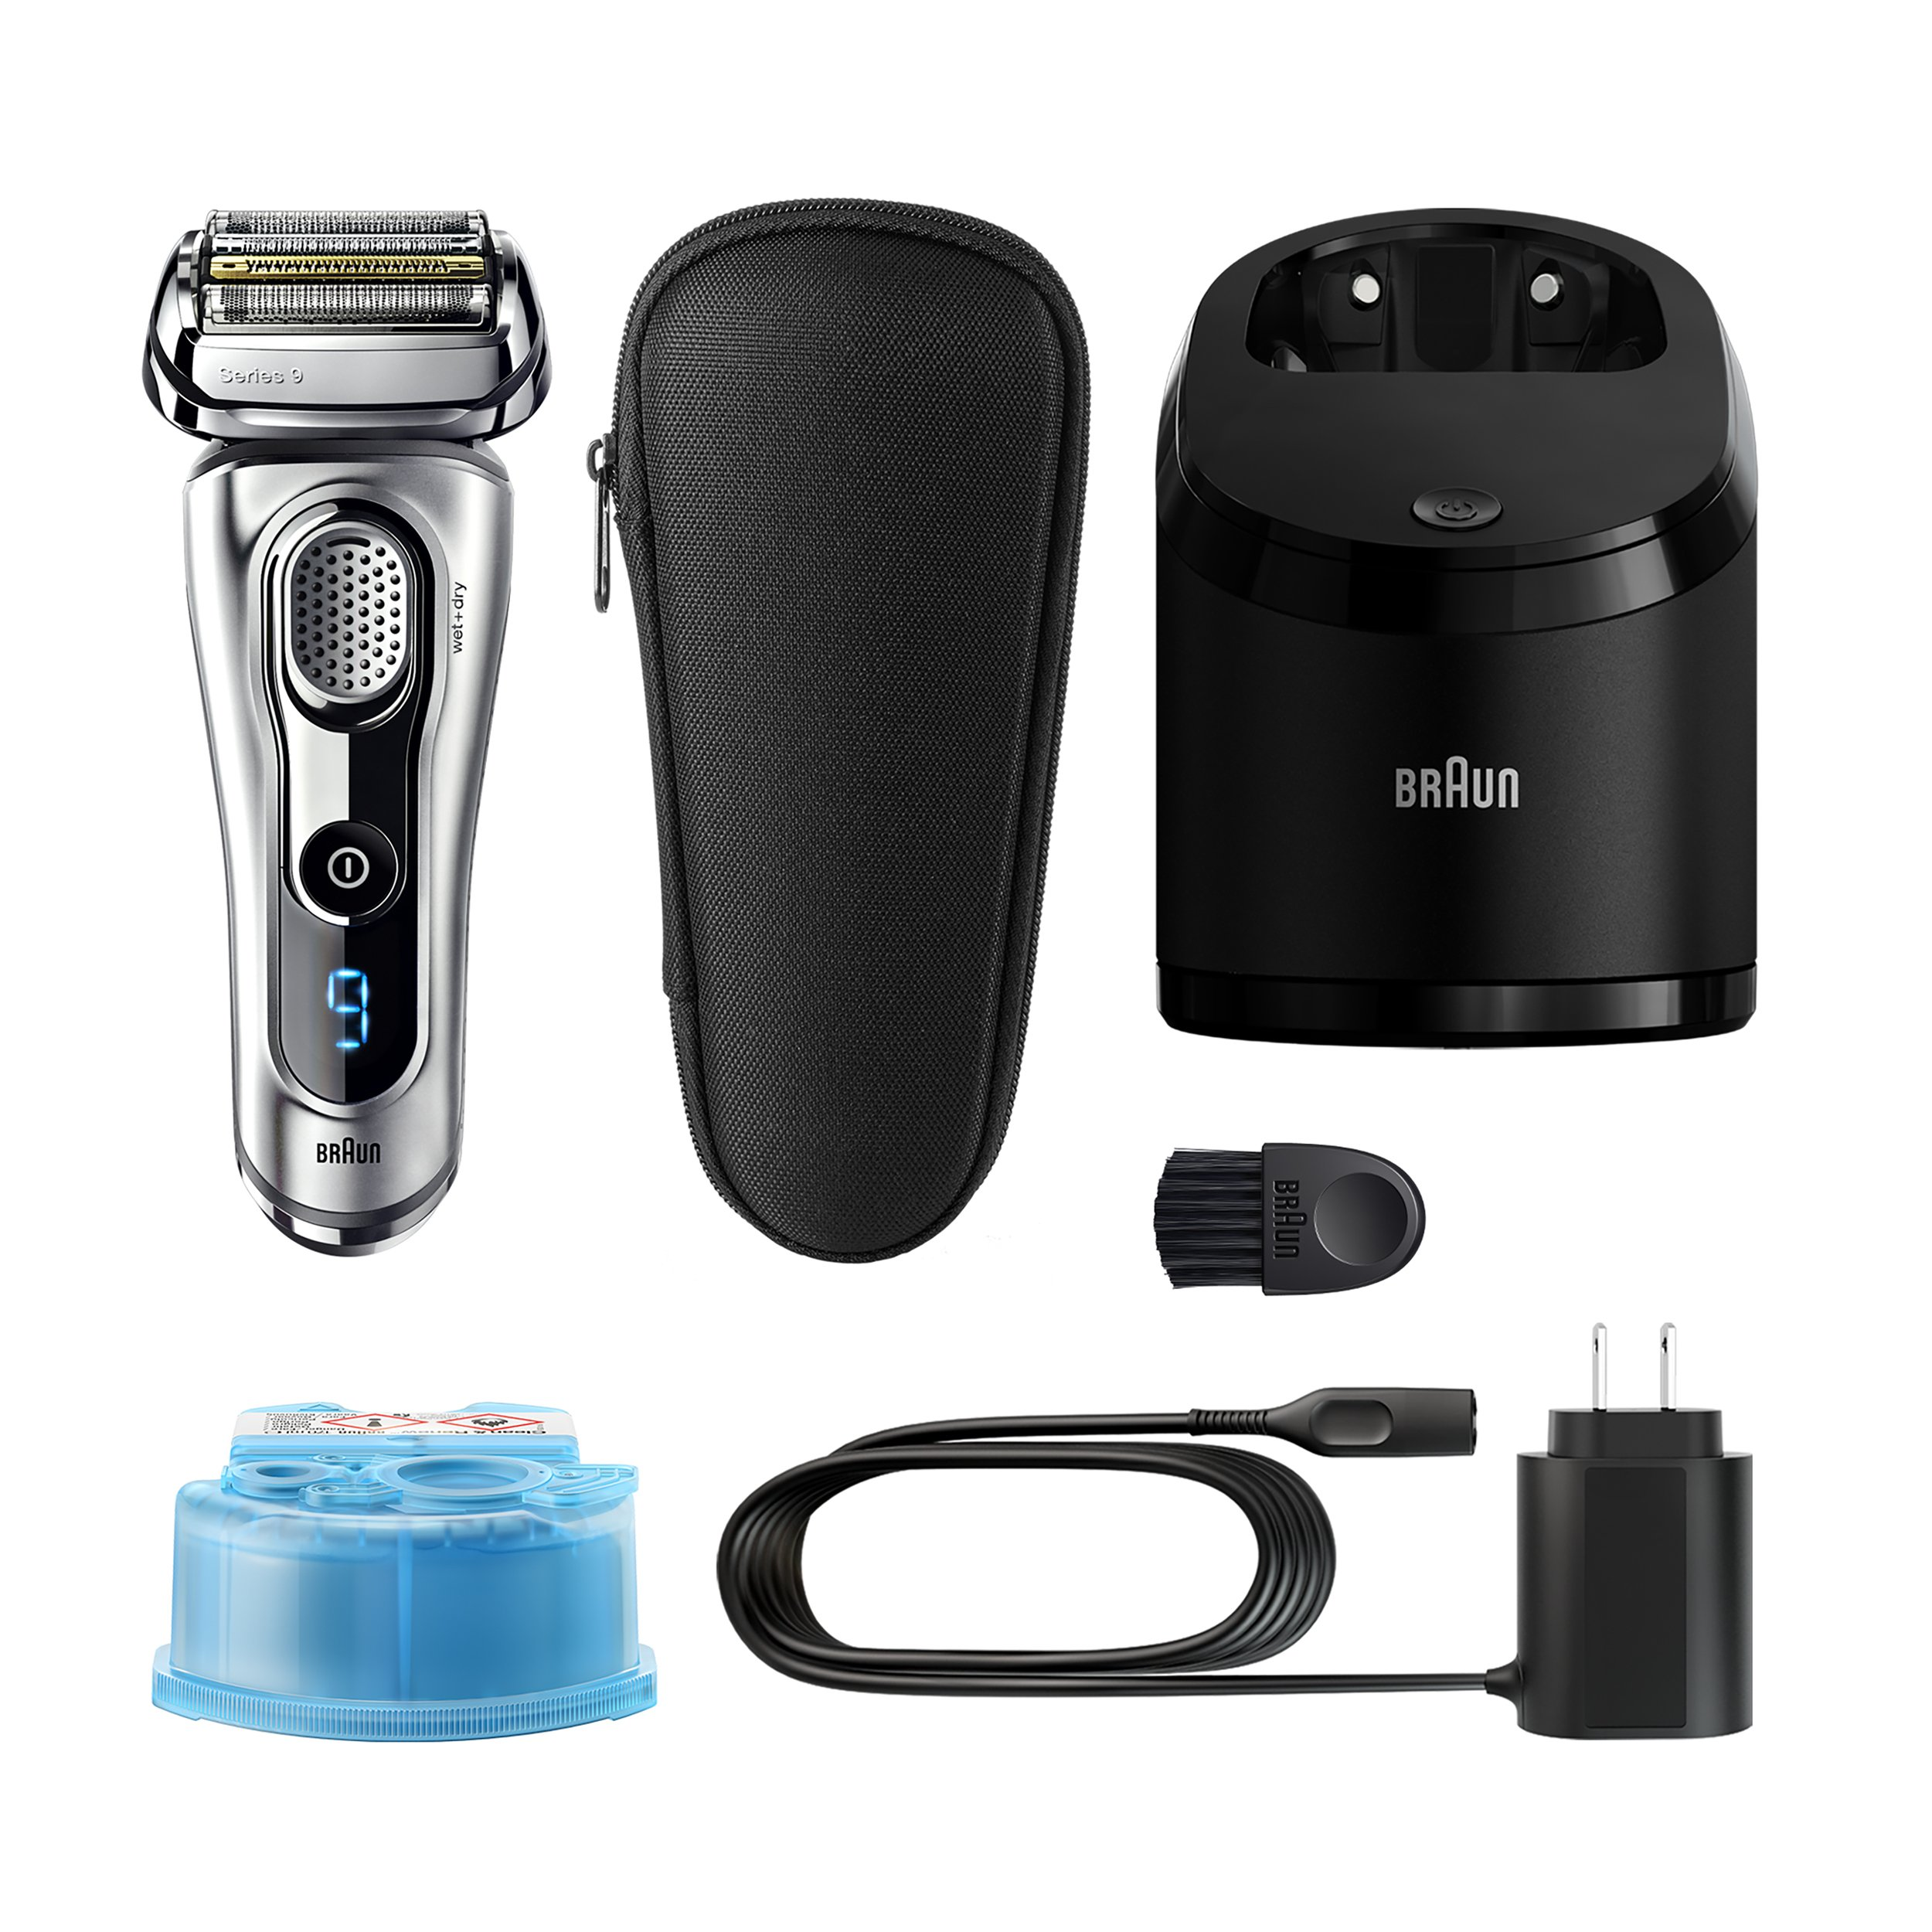 Braun Series 9290CC Men's Electric Foil Shaver / Electric Razor, Wet & Dry, Travel Case with Clean & Charge System by Braun (Image #2)